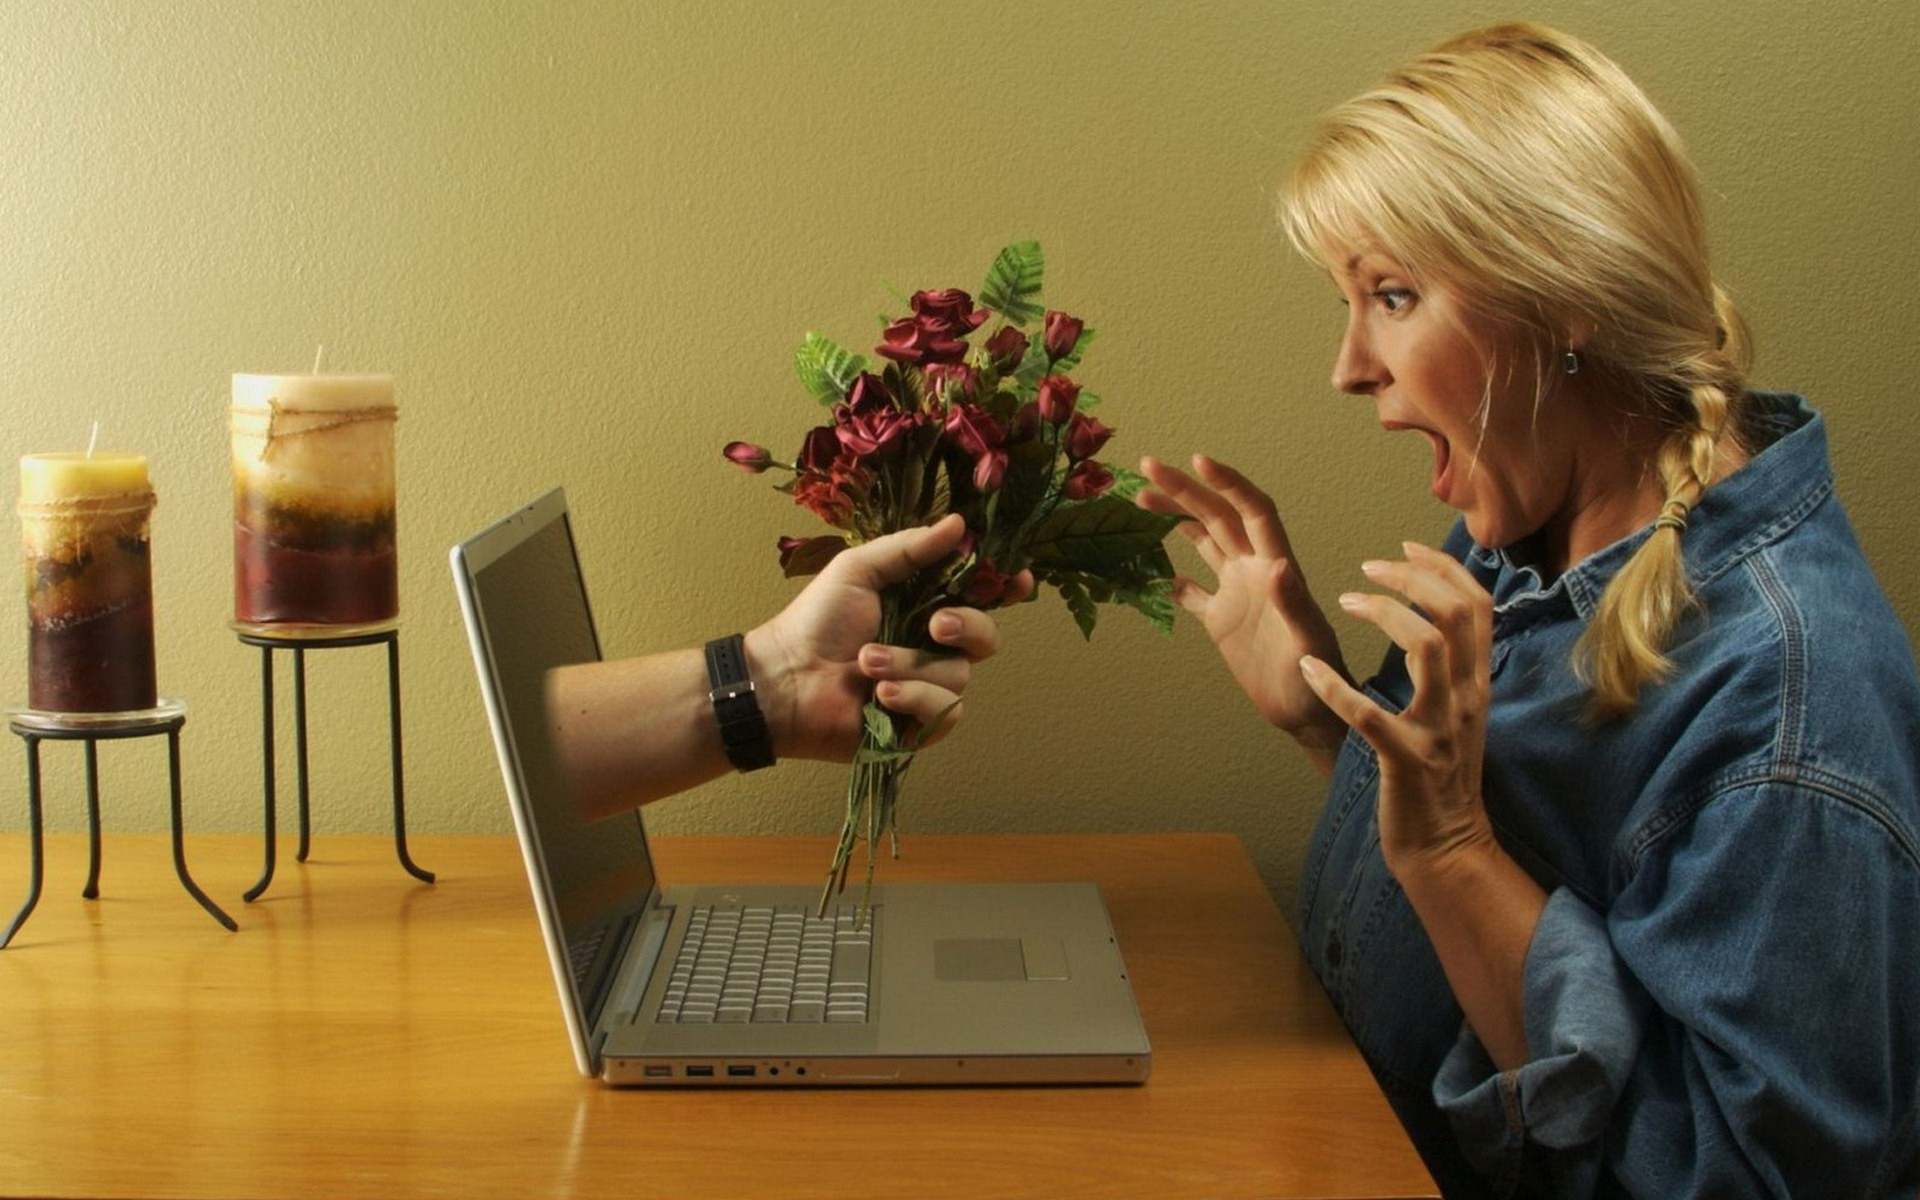 Romantic Use Of Technology Wide